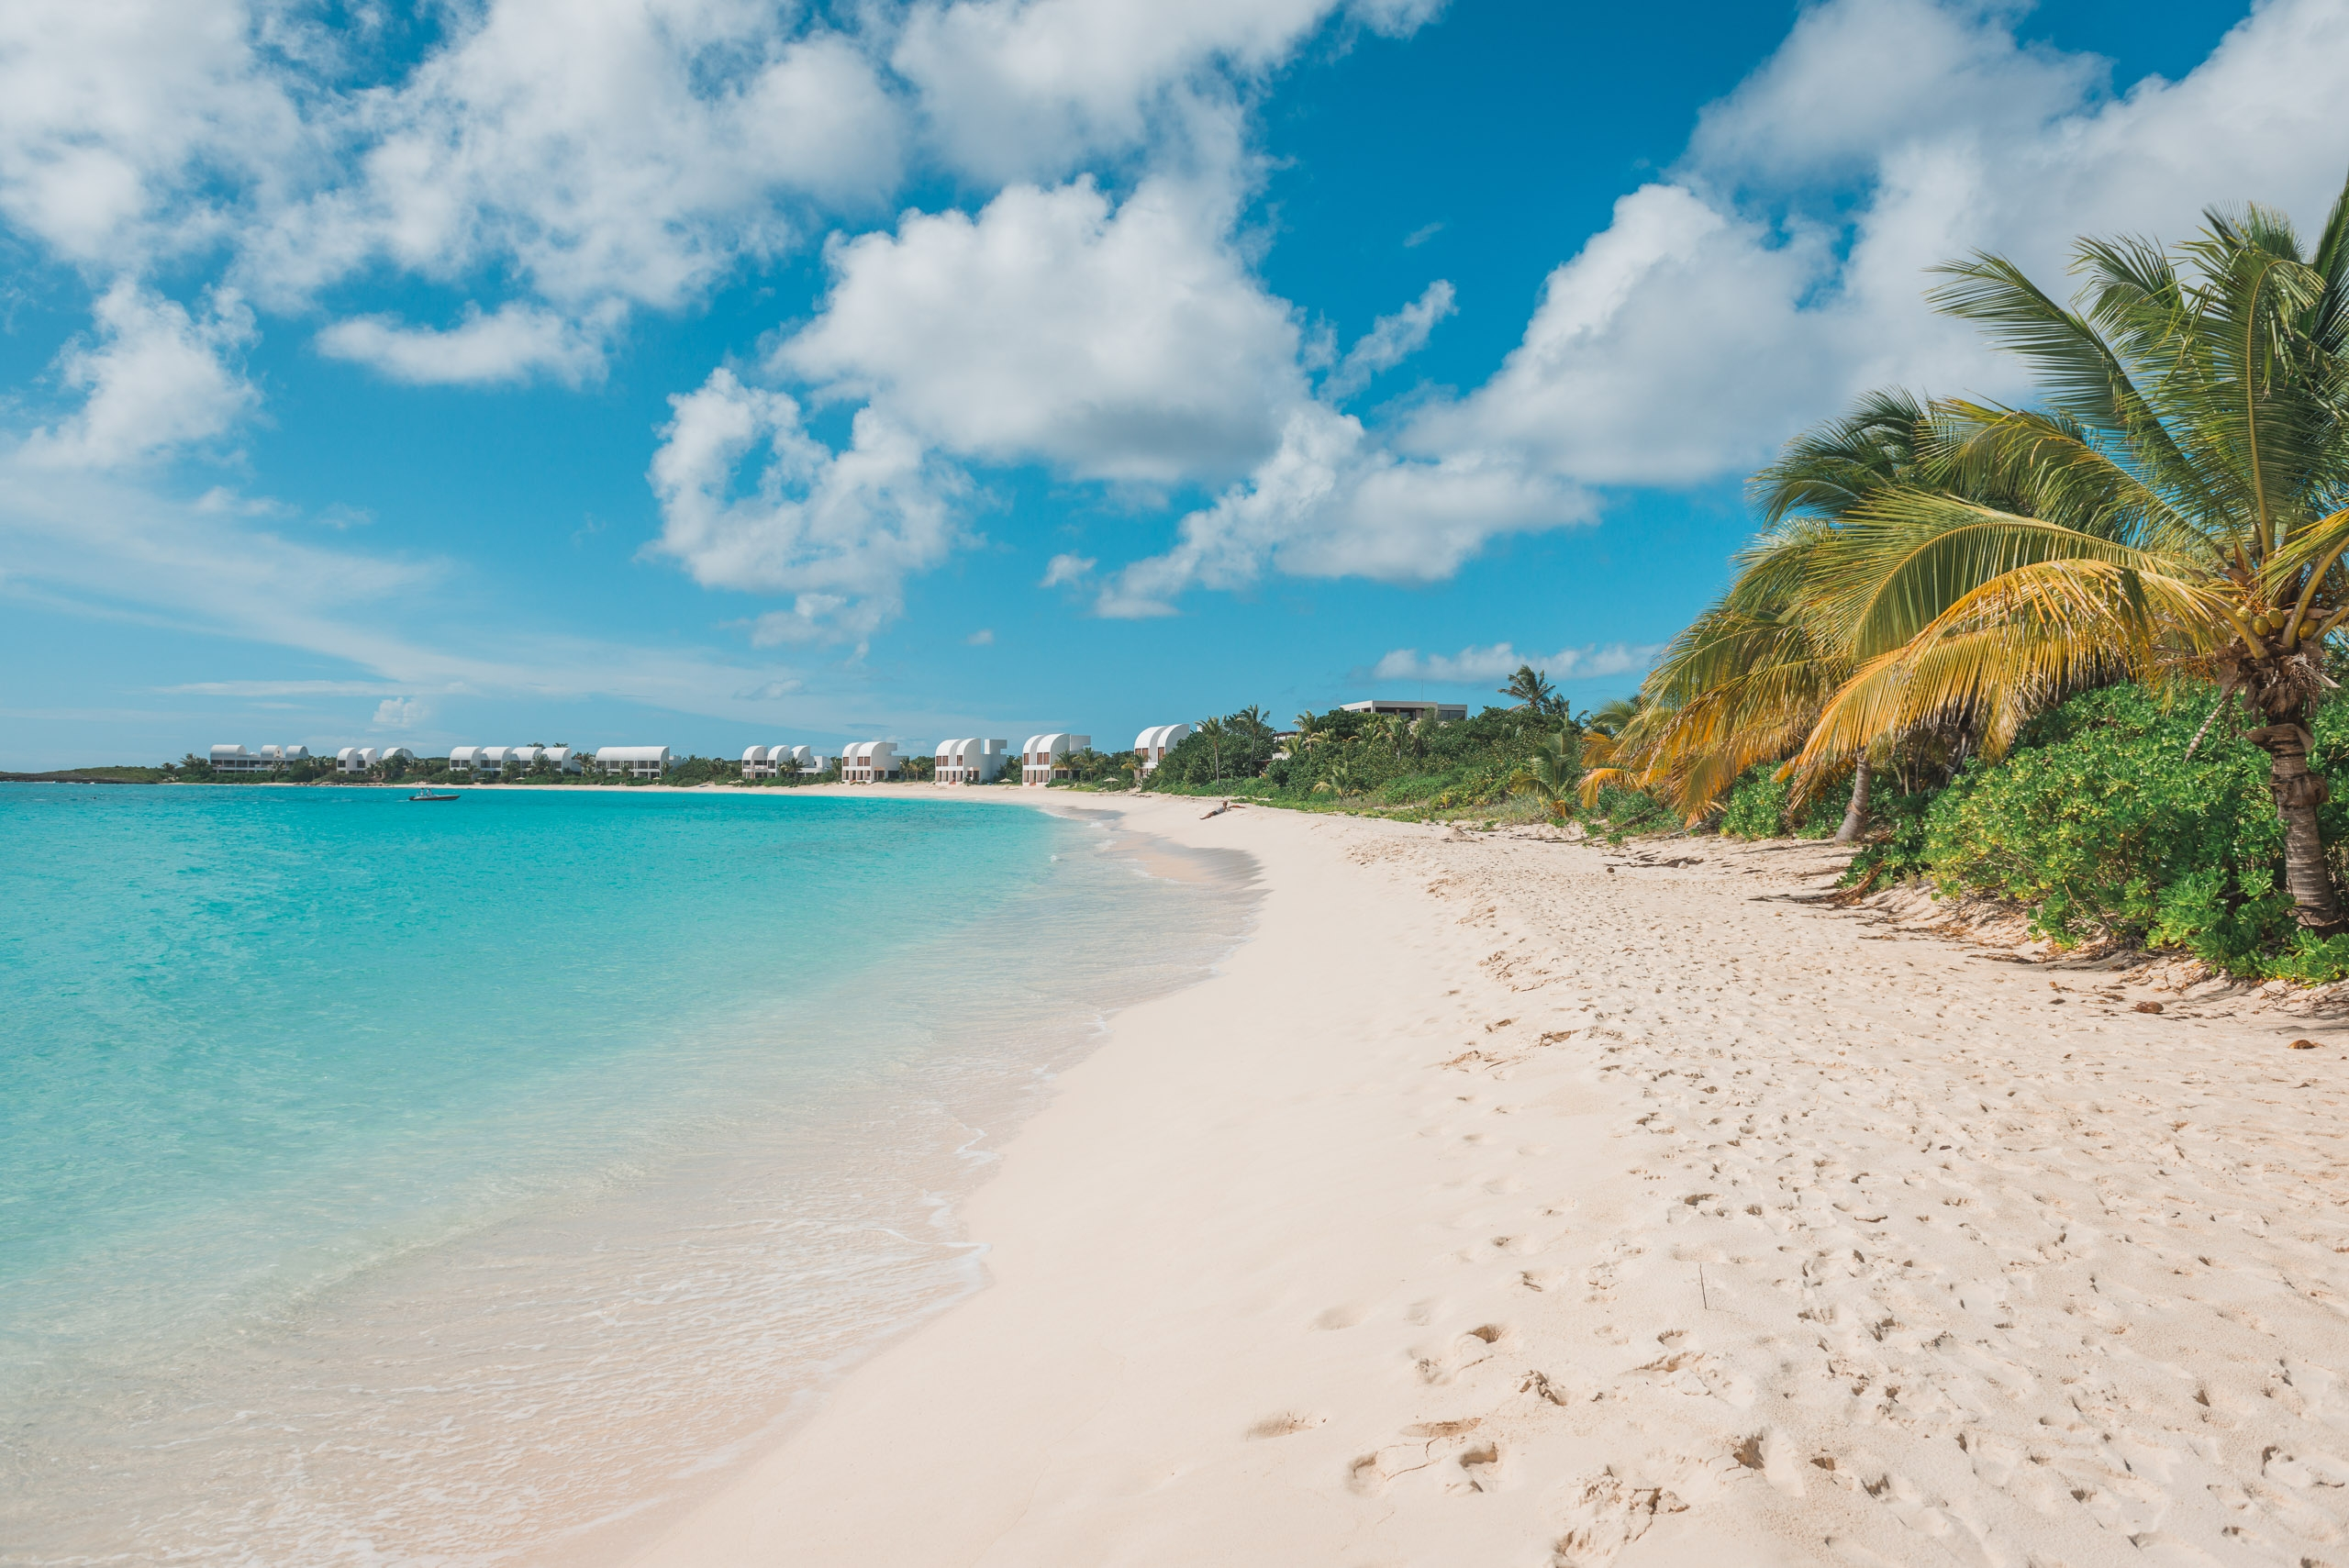 The Cap Juluca Resort in Anguilla - Part II